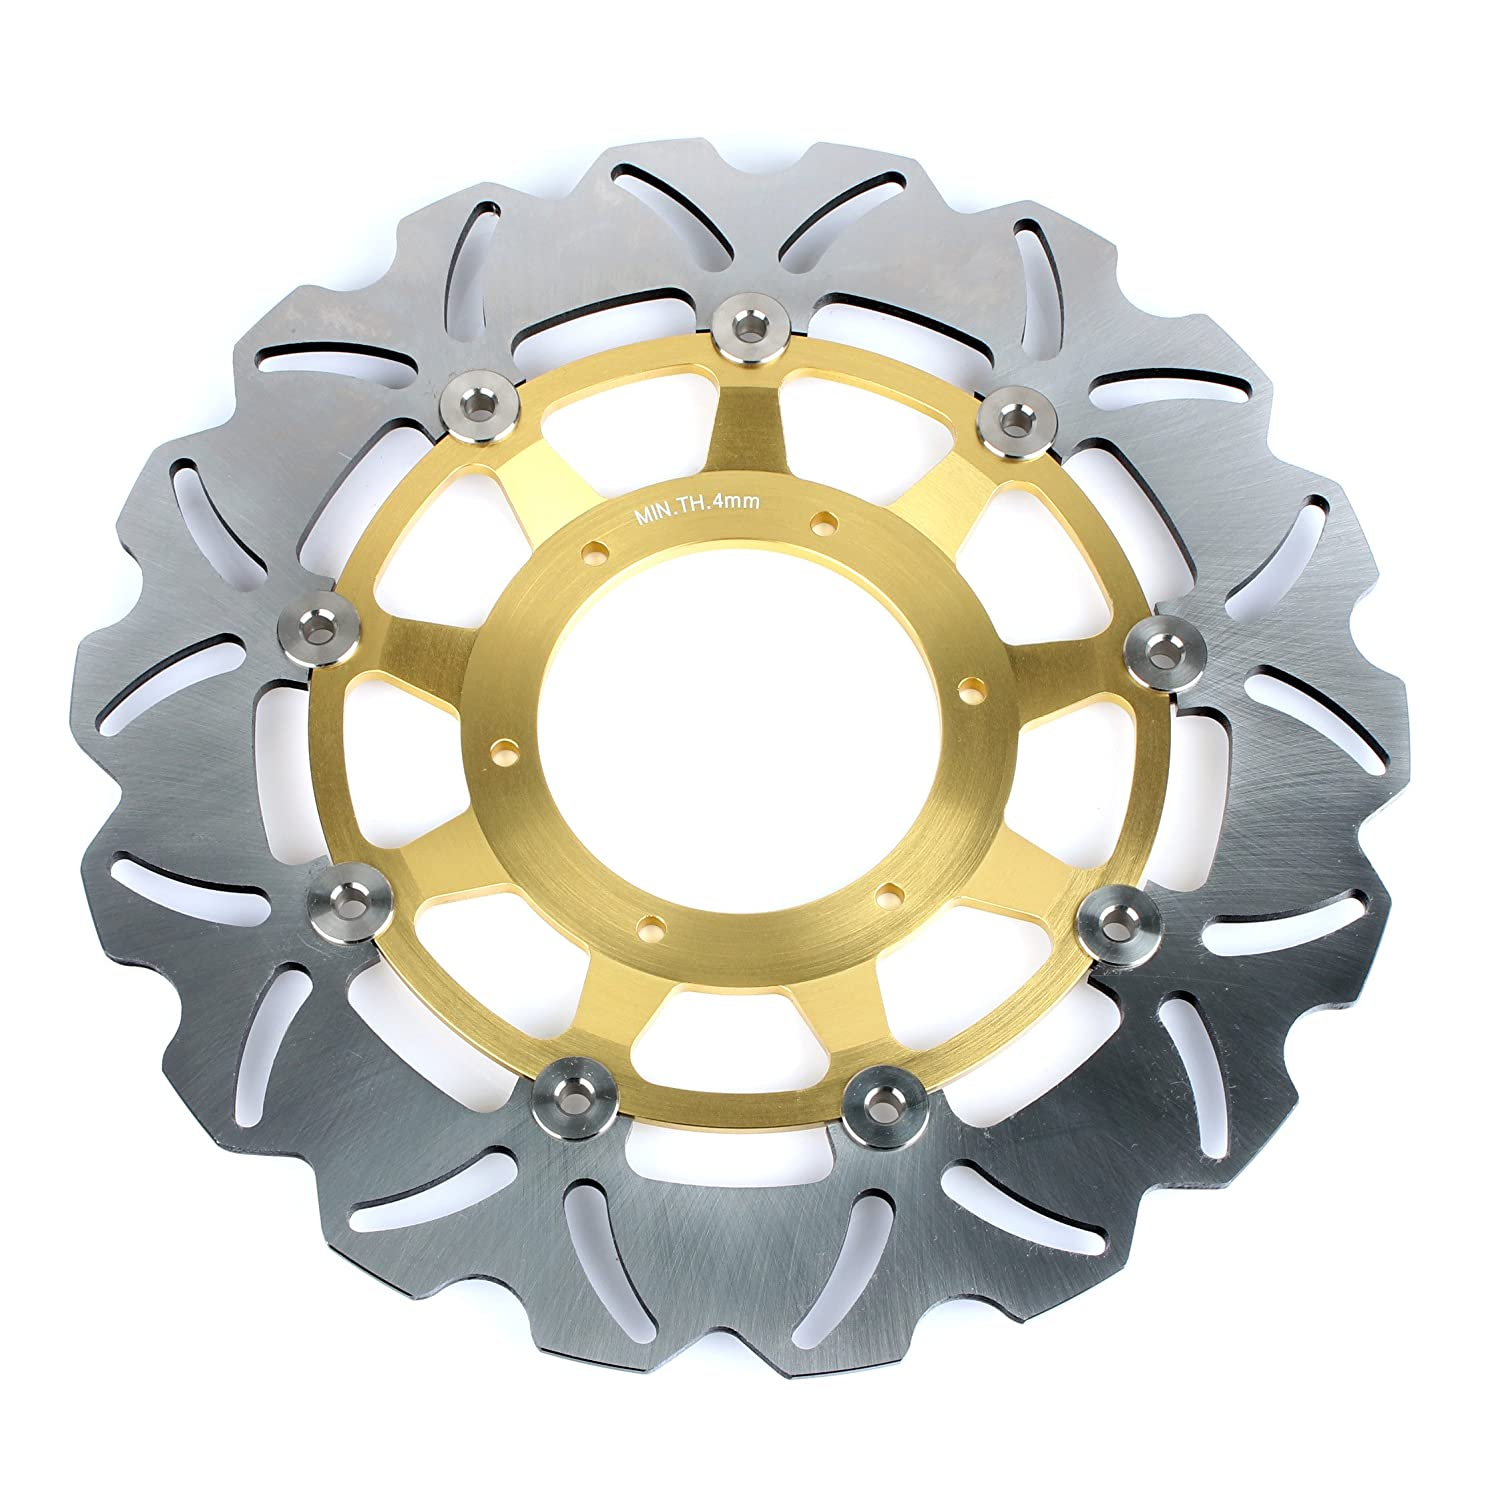 TARAZON 2x For CBR600F CBR600F4 CBR 600 F F4 1999 2000// CBR900RR CBR 900 RR 1992 1993// GL 1500 Valkyrie SC34 97-03// Gold Wing 1800 Front Brake Discs Disks